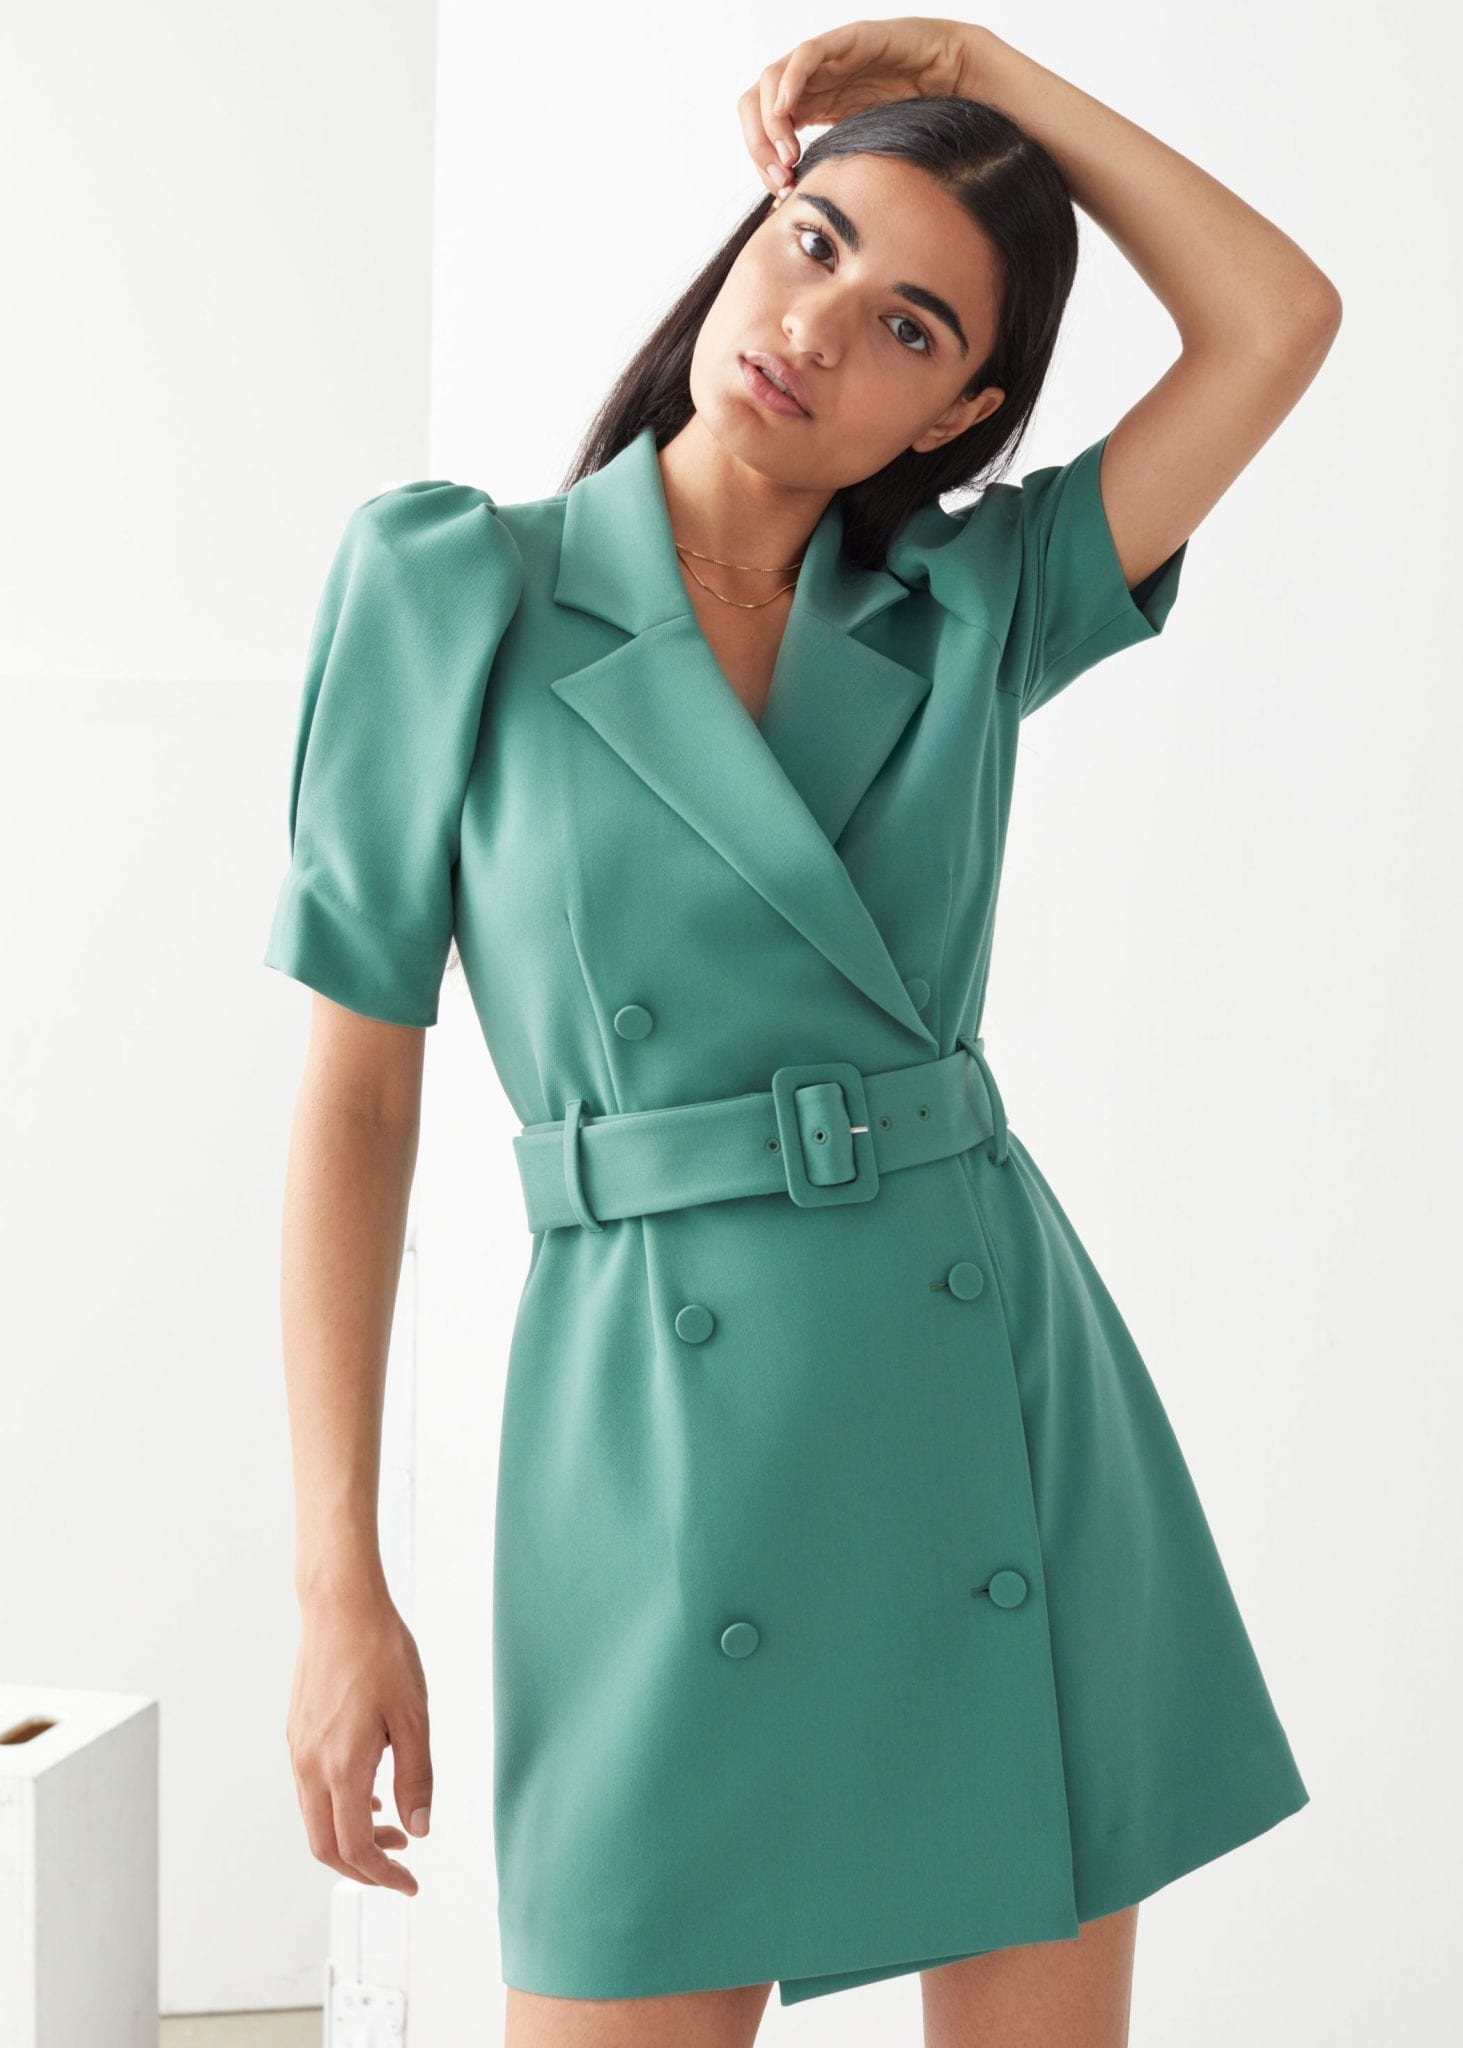 & OTHER STORIES Puff Sleeve Belted Mini Dress